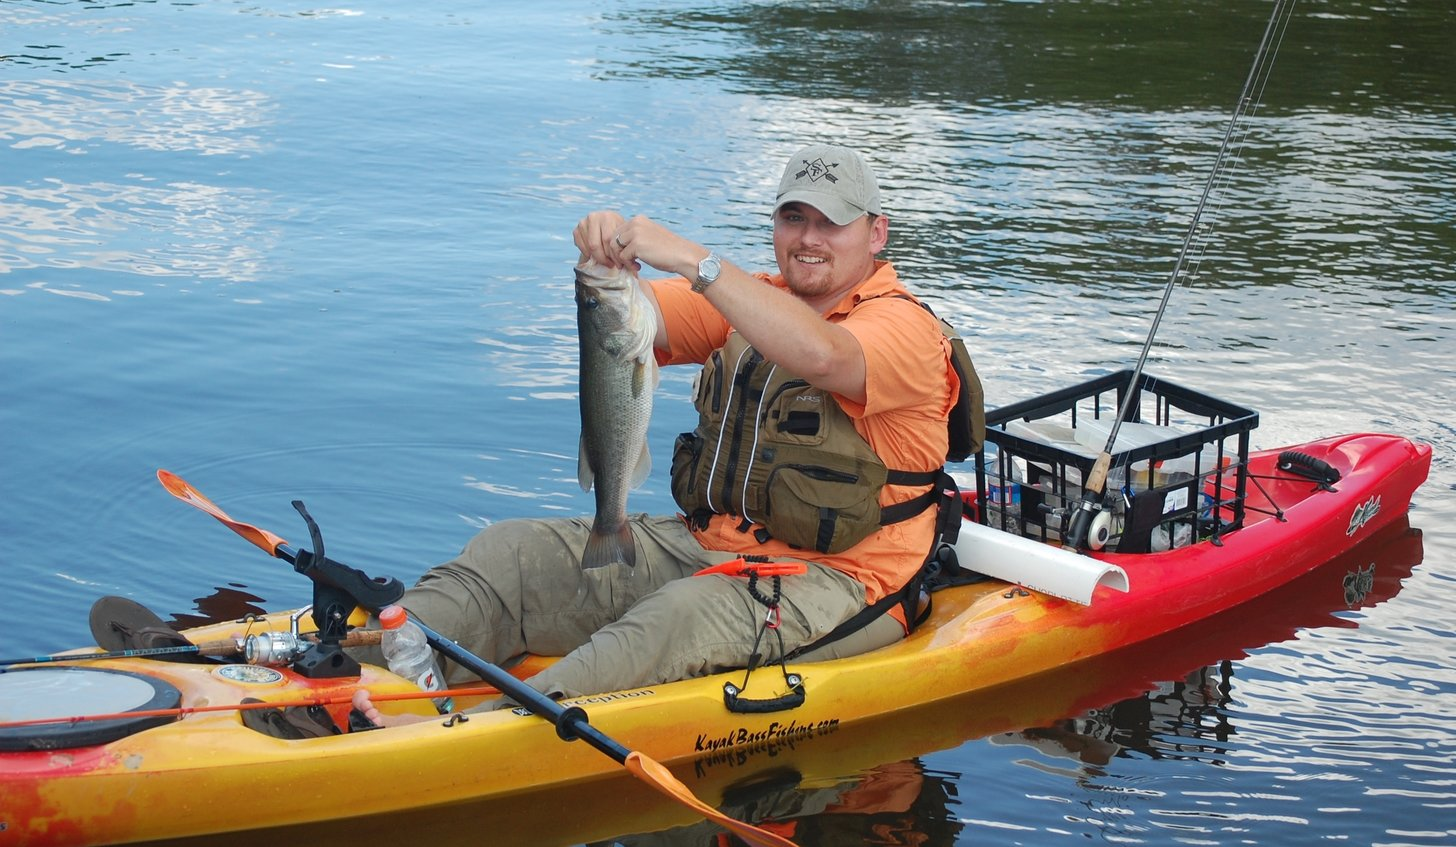 Kayak fishing 7 tips to become a better kayak angler for How to become a fishing guide